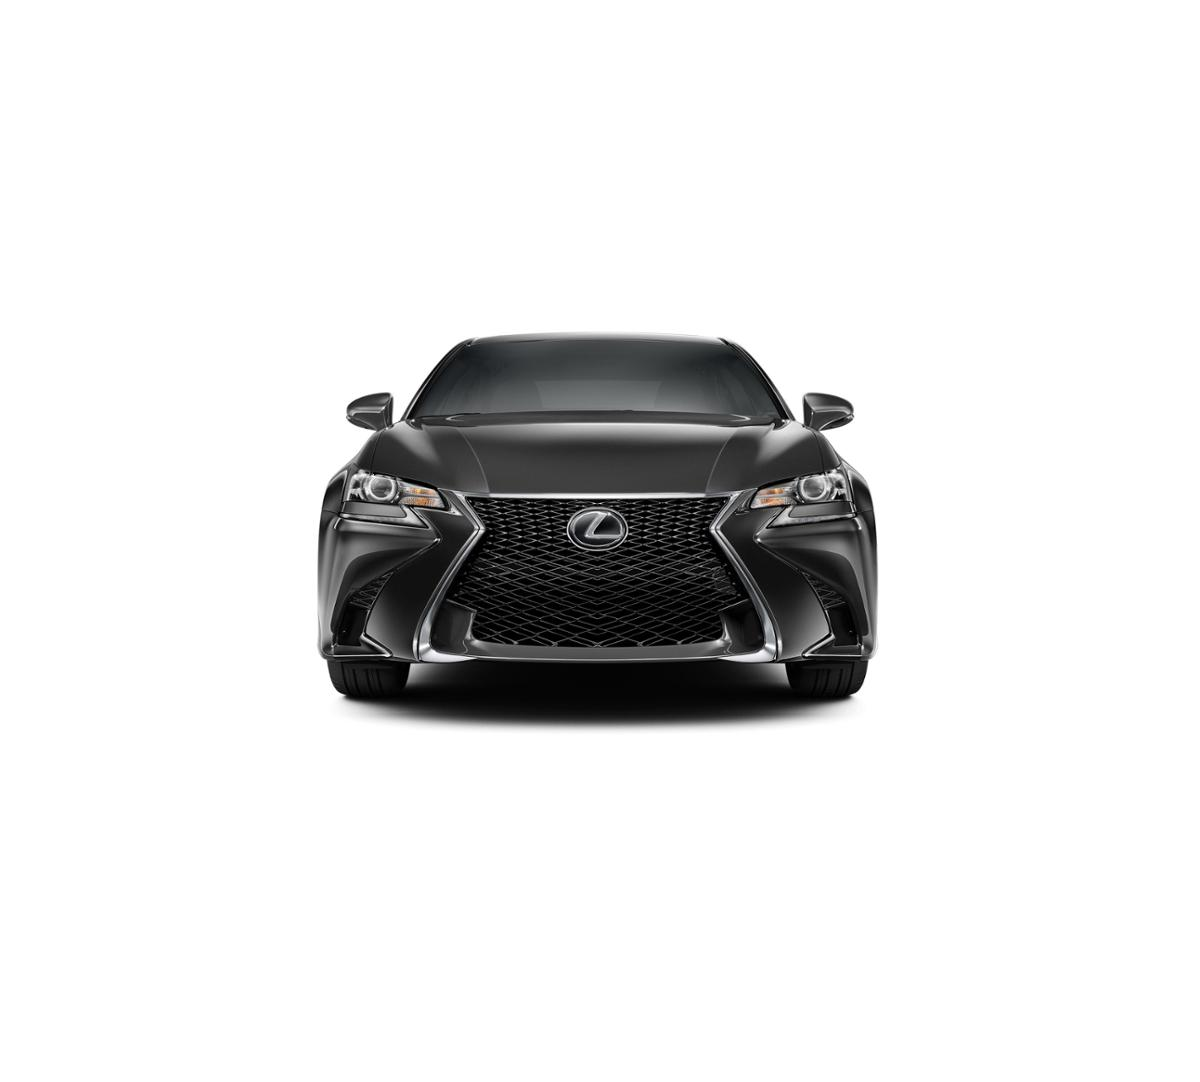 Lexus Dealership In Va: Smoky Granite Mica 2019 Lexus GS 350 F SPORT Alexandria